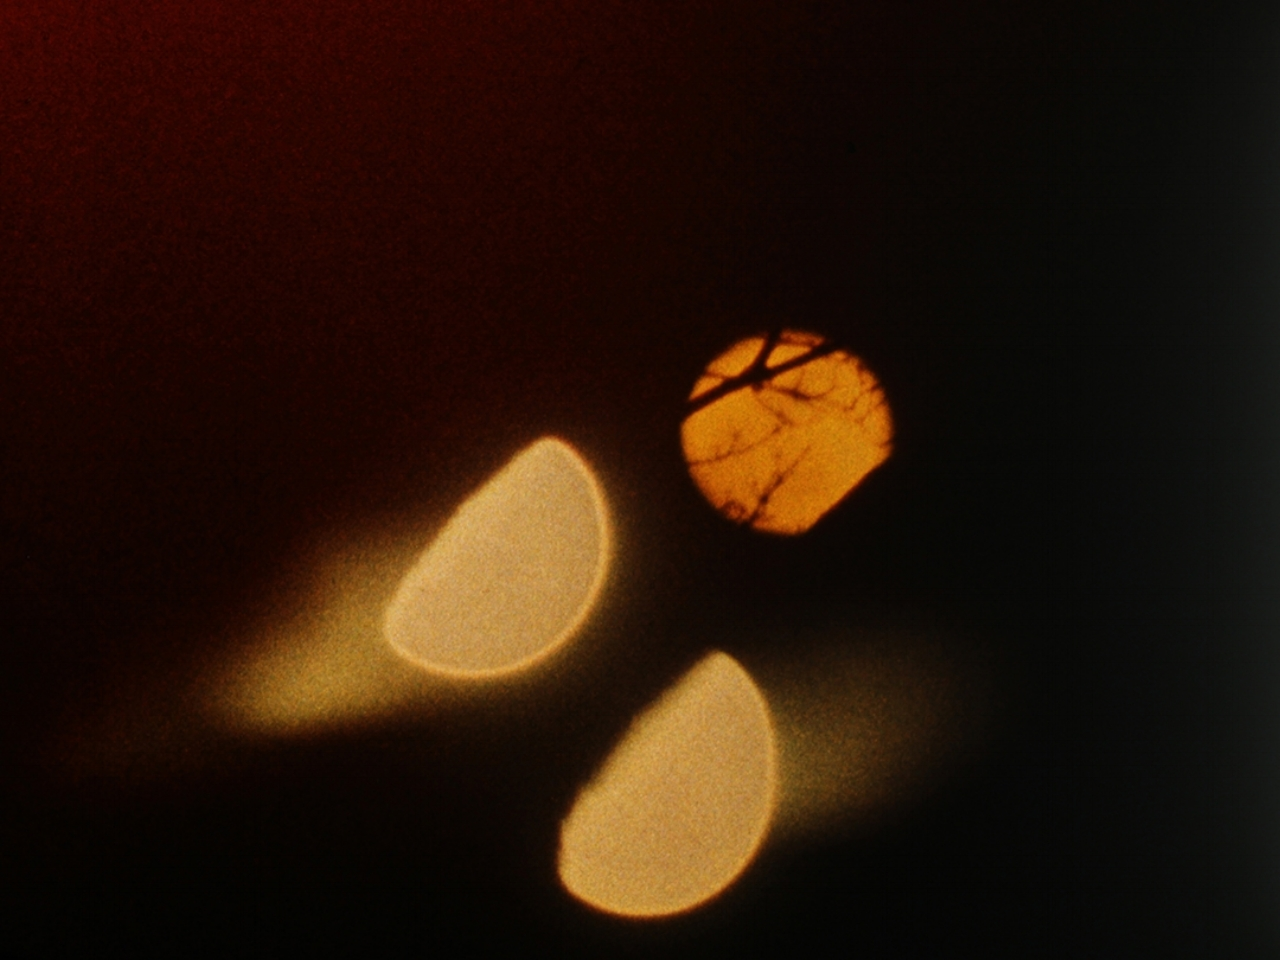 Lunar Almanac  Malena Szlam  2013 / 4 minutes / Chile/Canada / 16mm / silent   Lunar Almanac  initiates a journey through magnetic spheres with its staccato layering of single-frame, long exposures of a multiplied moon. Shot in 16mm Ektachrome and hand processed, the film's artisanal touches are imbued with nocturnal mystery. -Andréa Picard